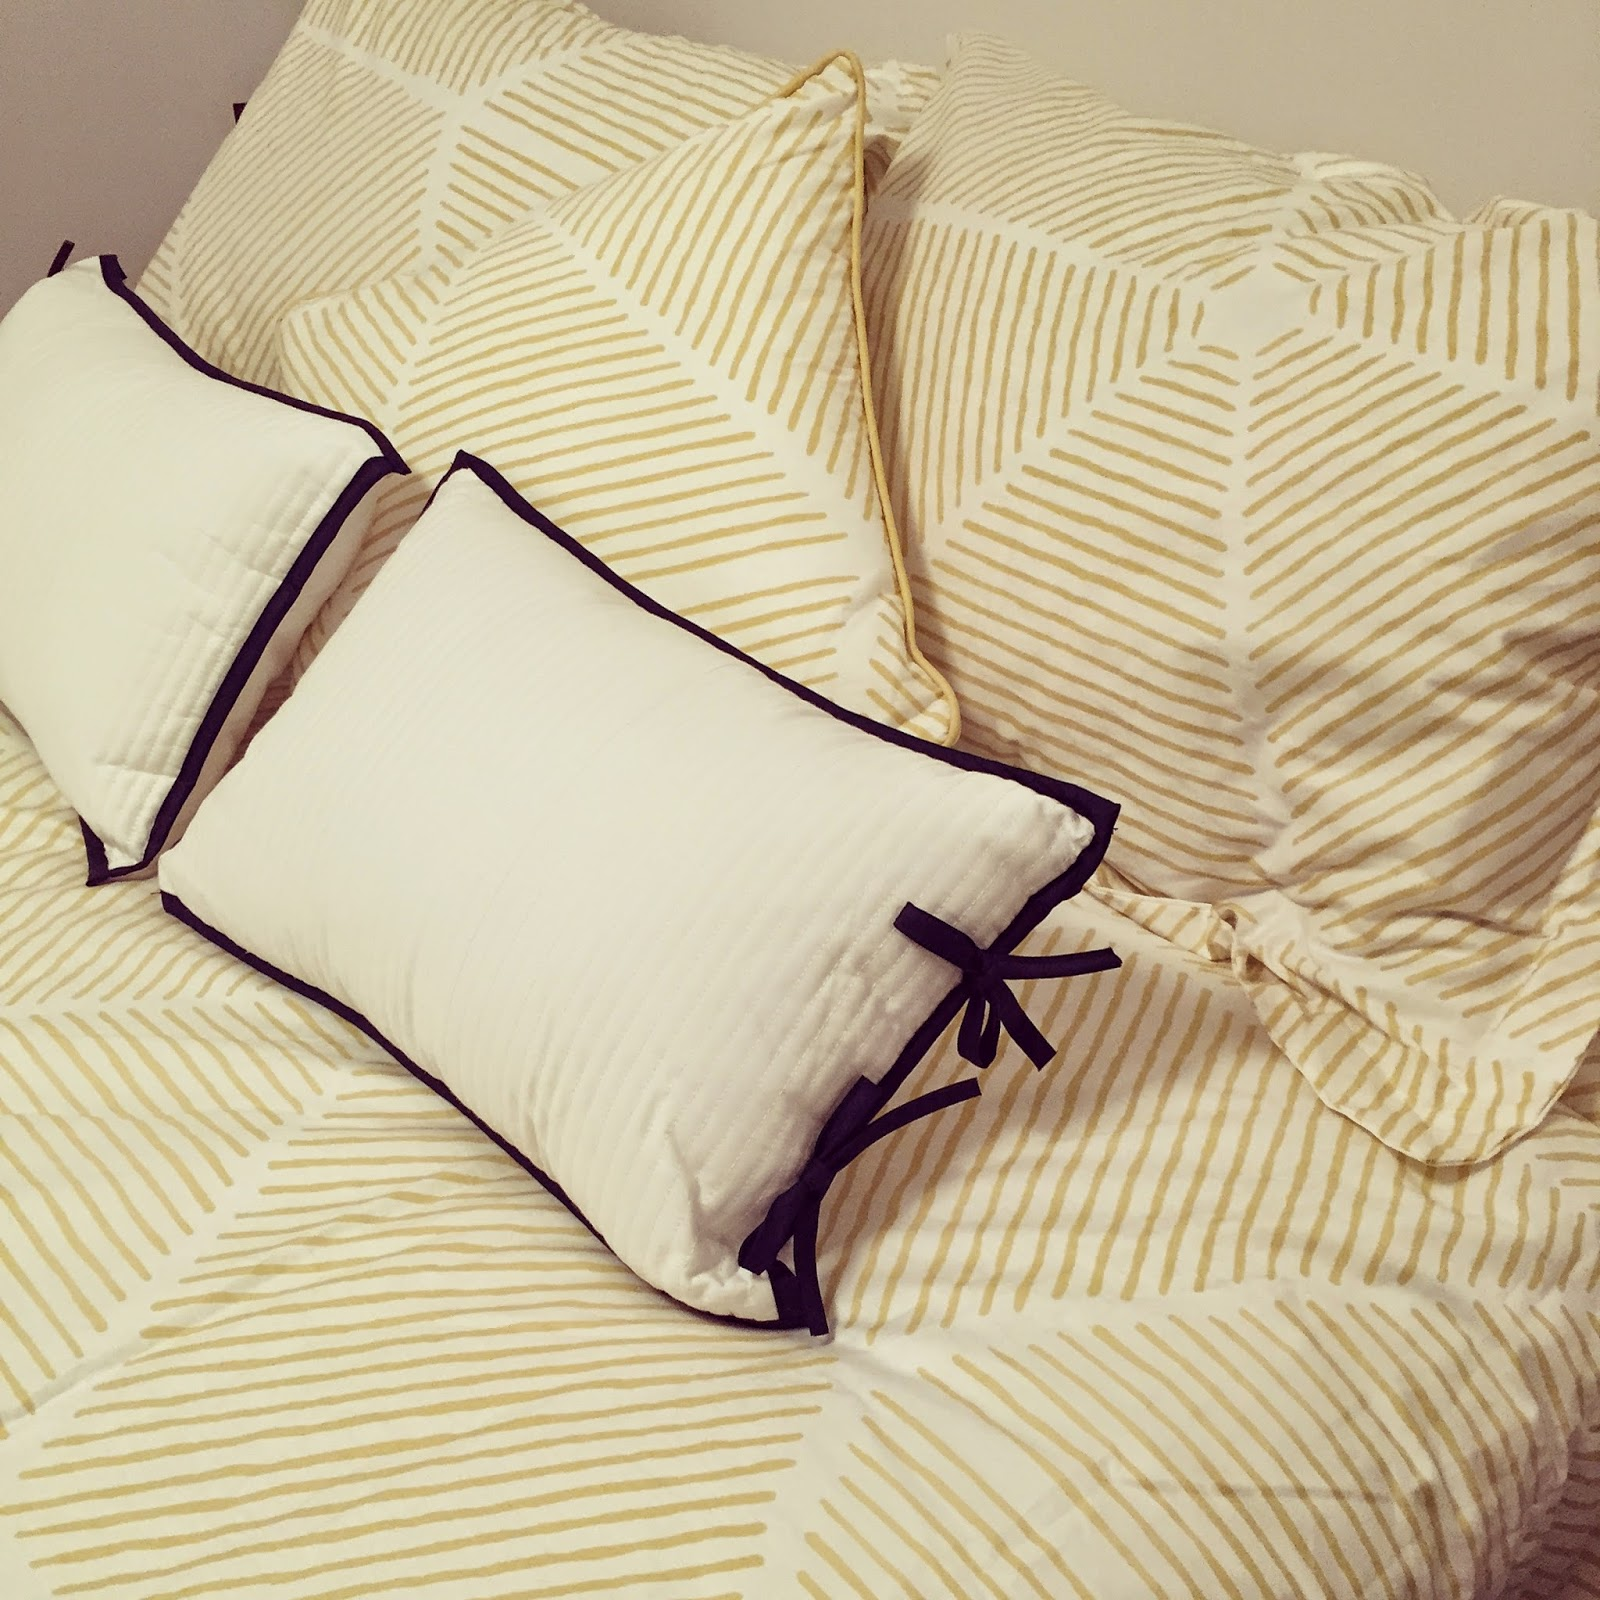 Redoing my bedroom with a bright new bed set